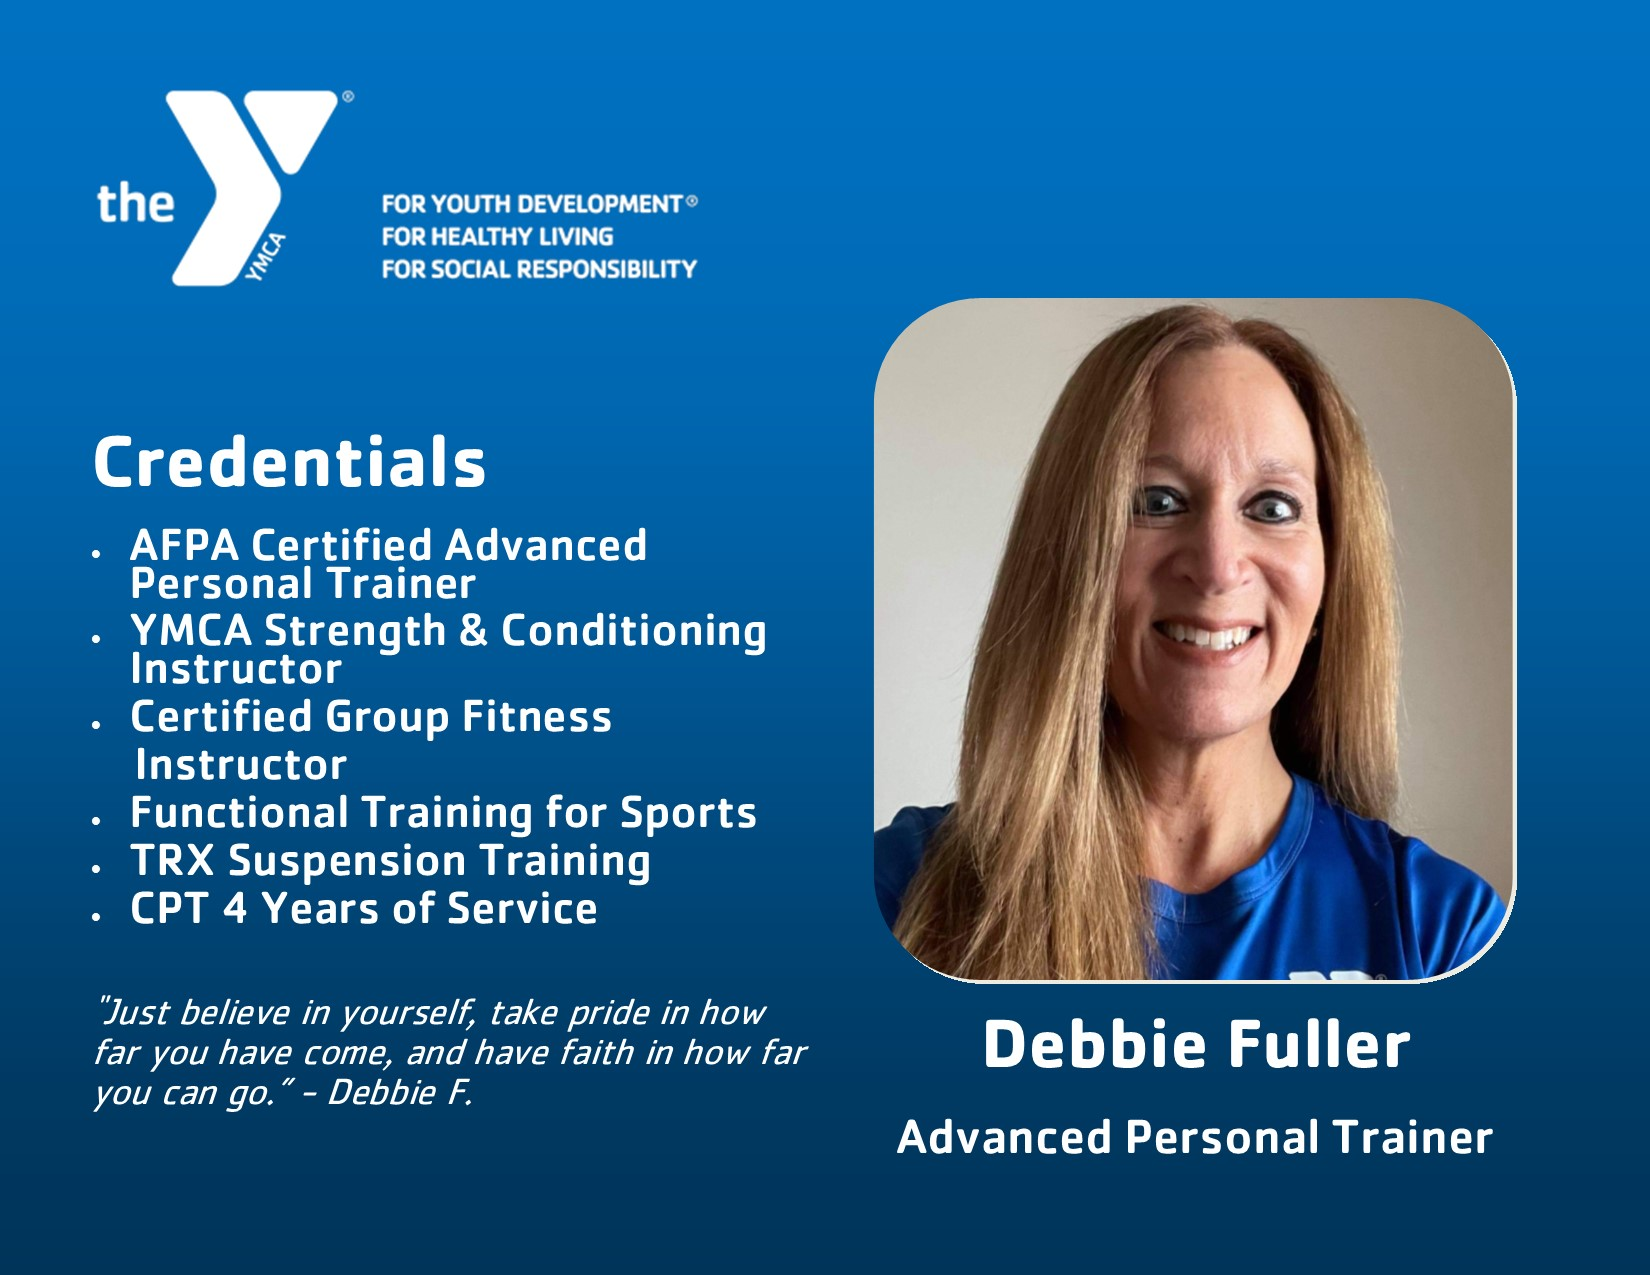 http://mtrymca.org/sites/mtrymca.org/assets/images/about/Debbie-Bio.jpg